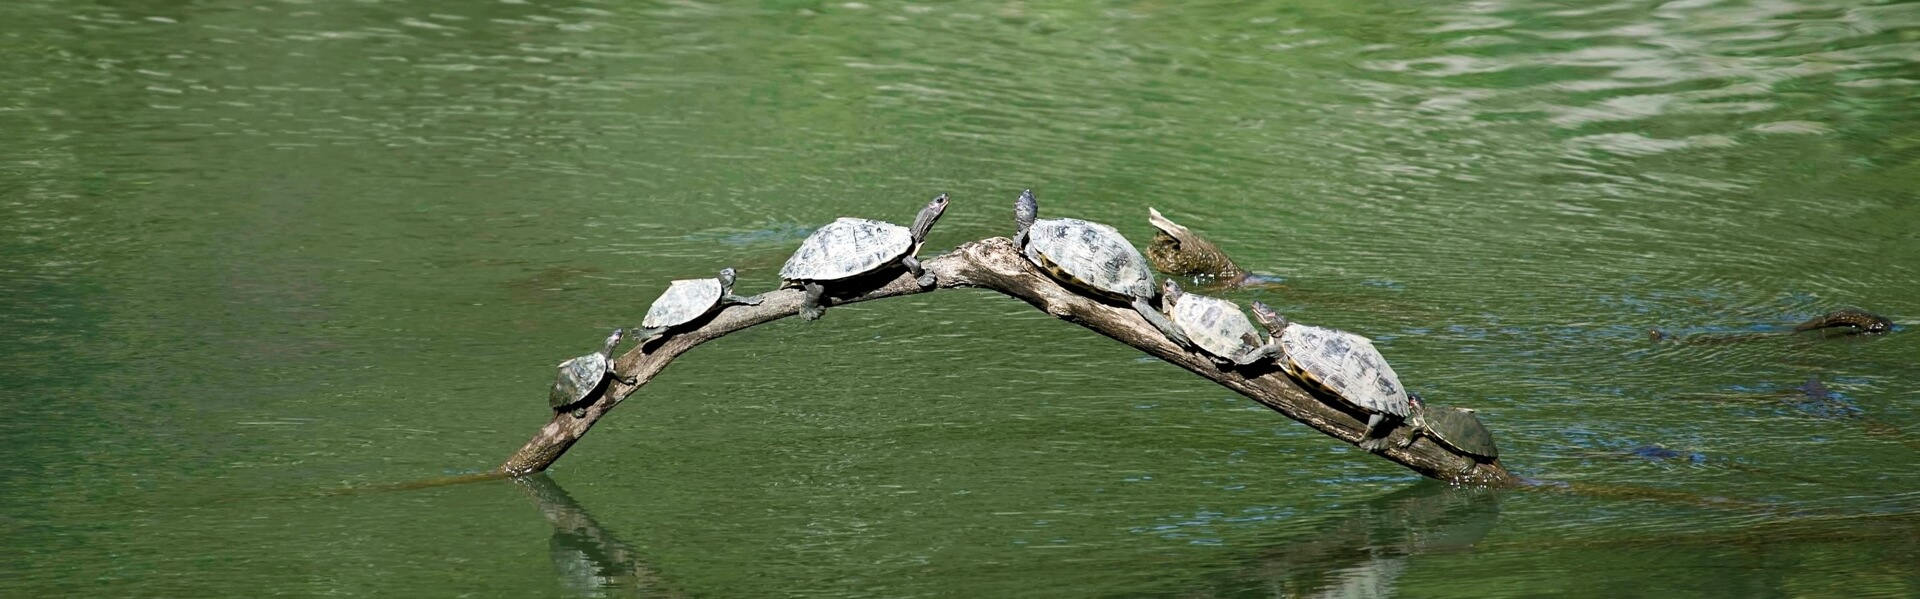 Baruah turtles